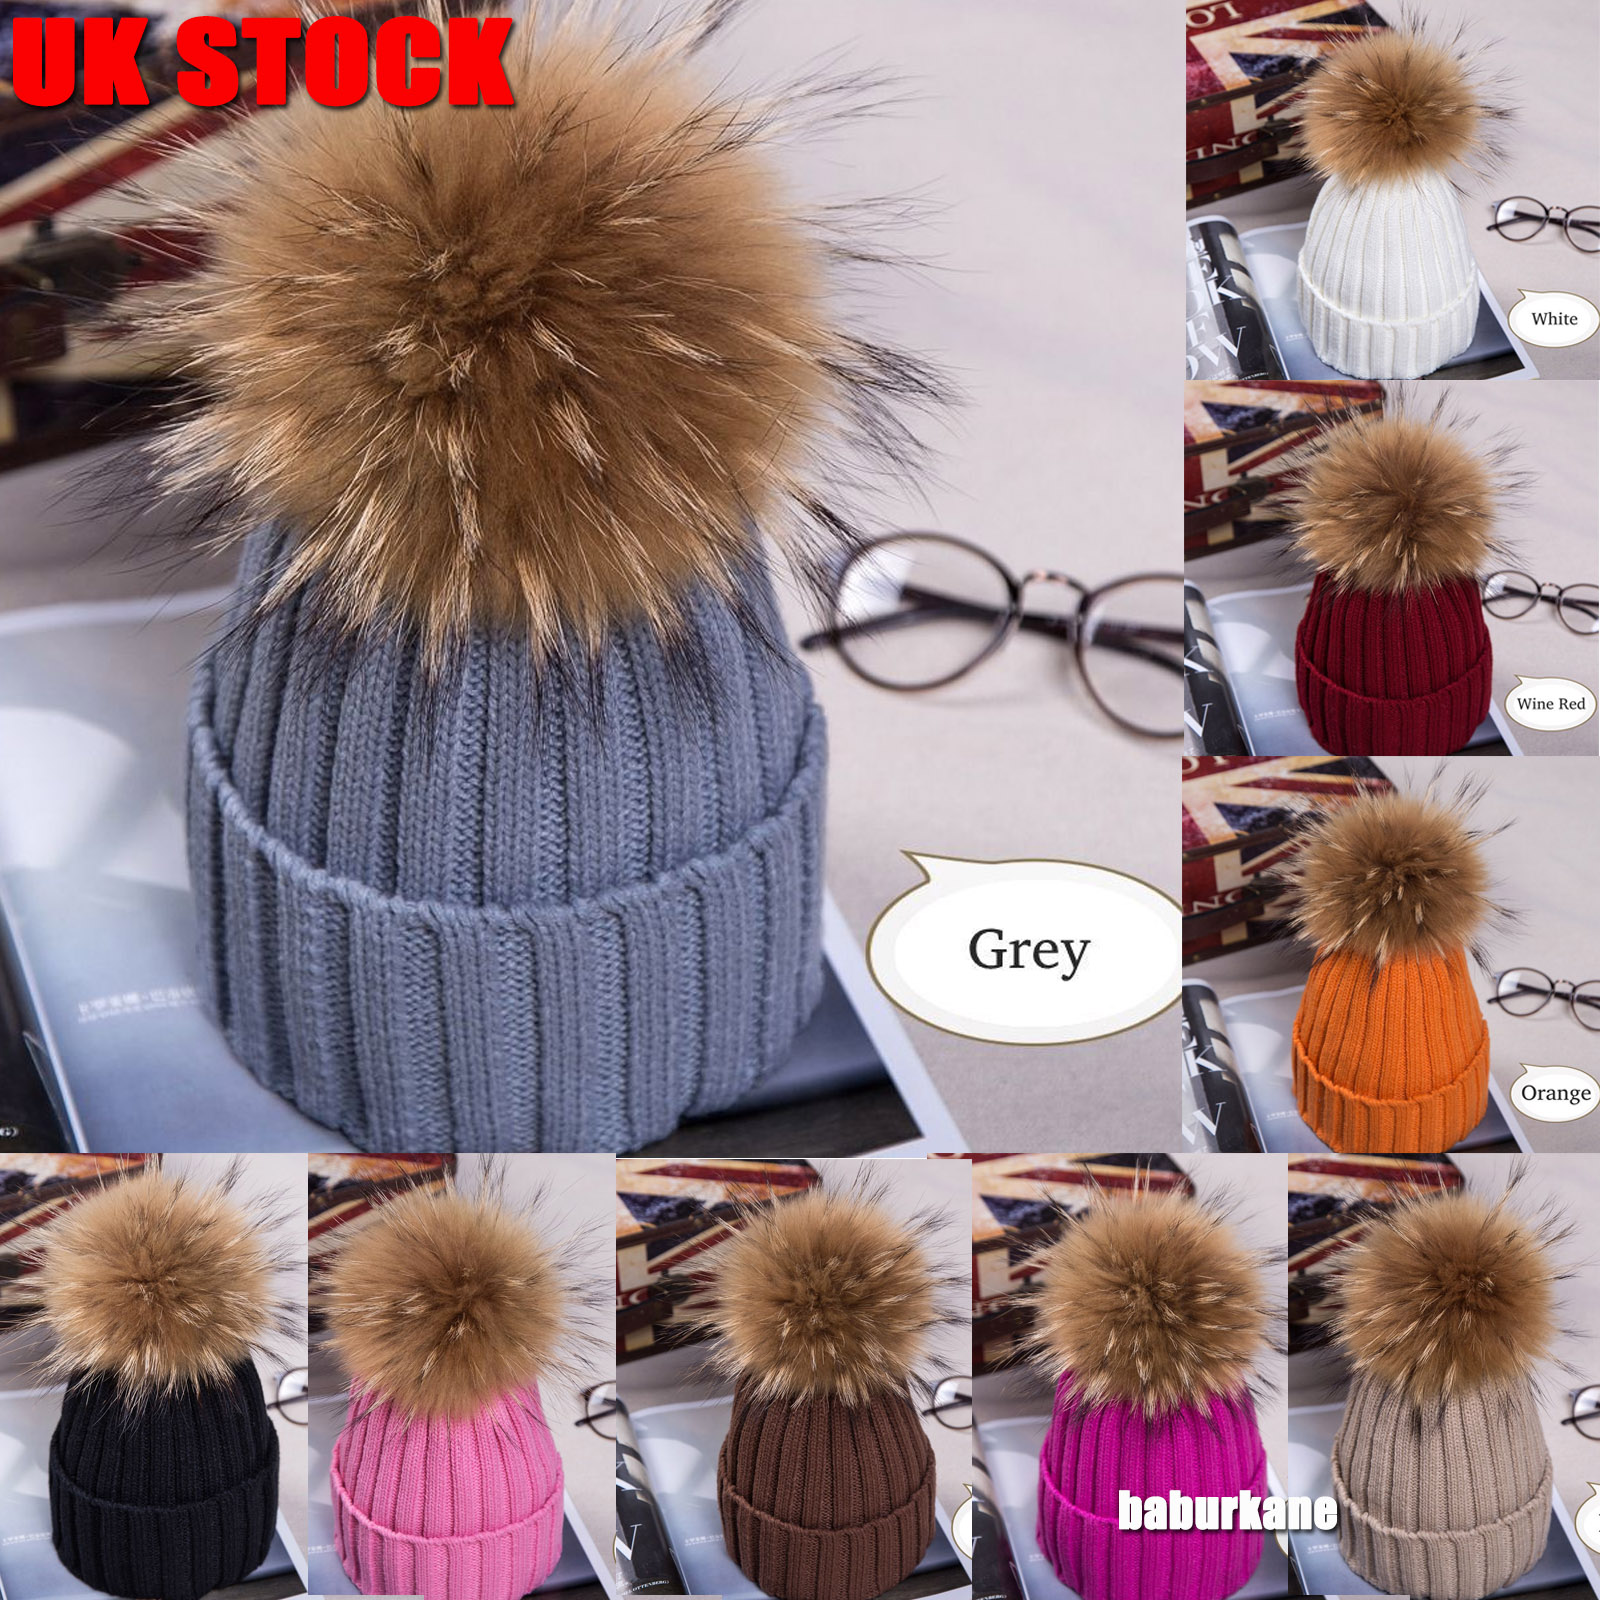 b6eec285108 Details about 2018Hot Women Winter Racoon Fur Pom Pom 15cm Ball Knit Beanie  Ski Cap Bobble Hat